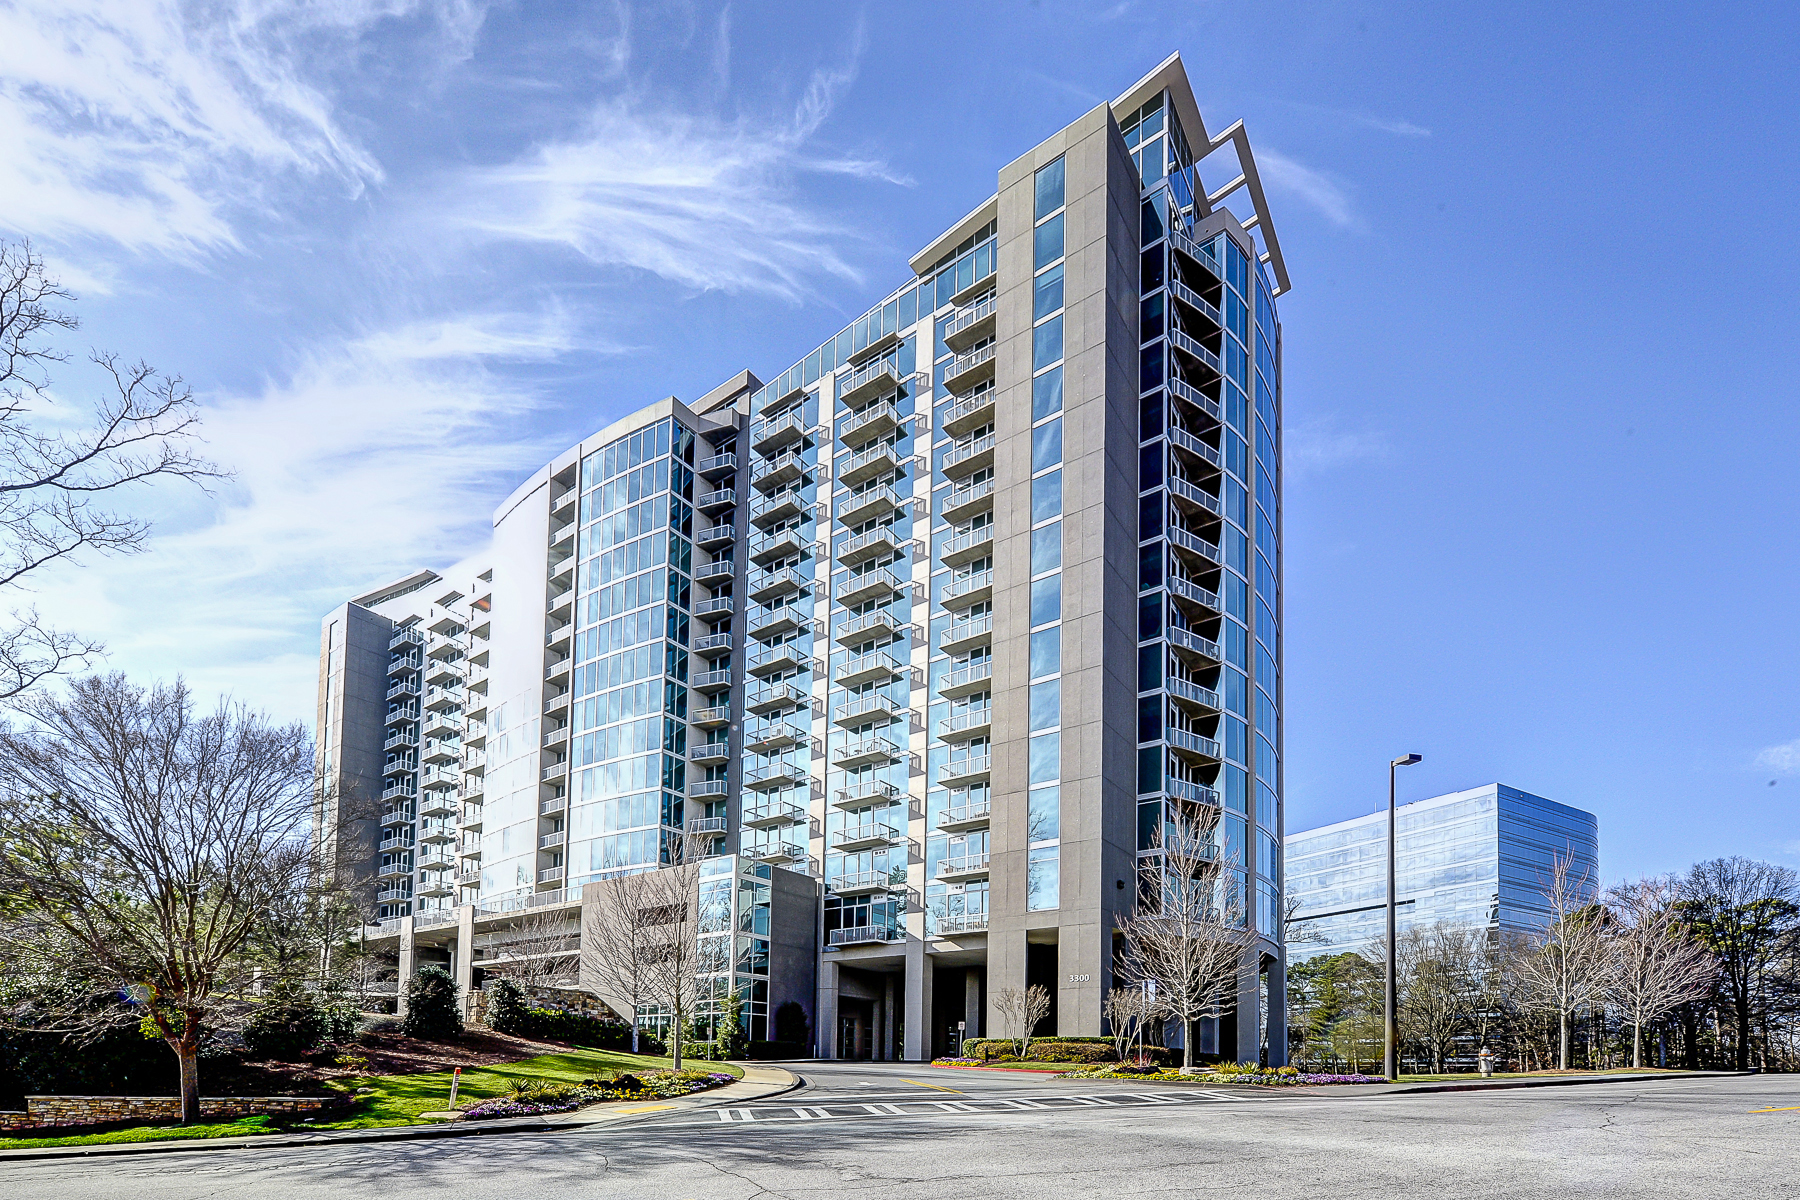 Condominium for Sale at 12th Floor Condo With Fabulous Views 3300 Windy Ridge Parkway SE No. 1215 Atlanta, Georgia 30339 United States